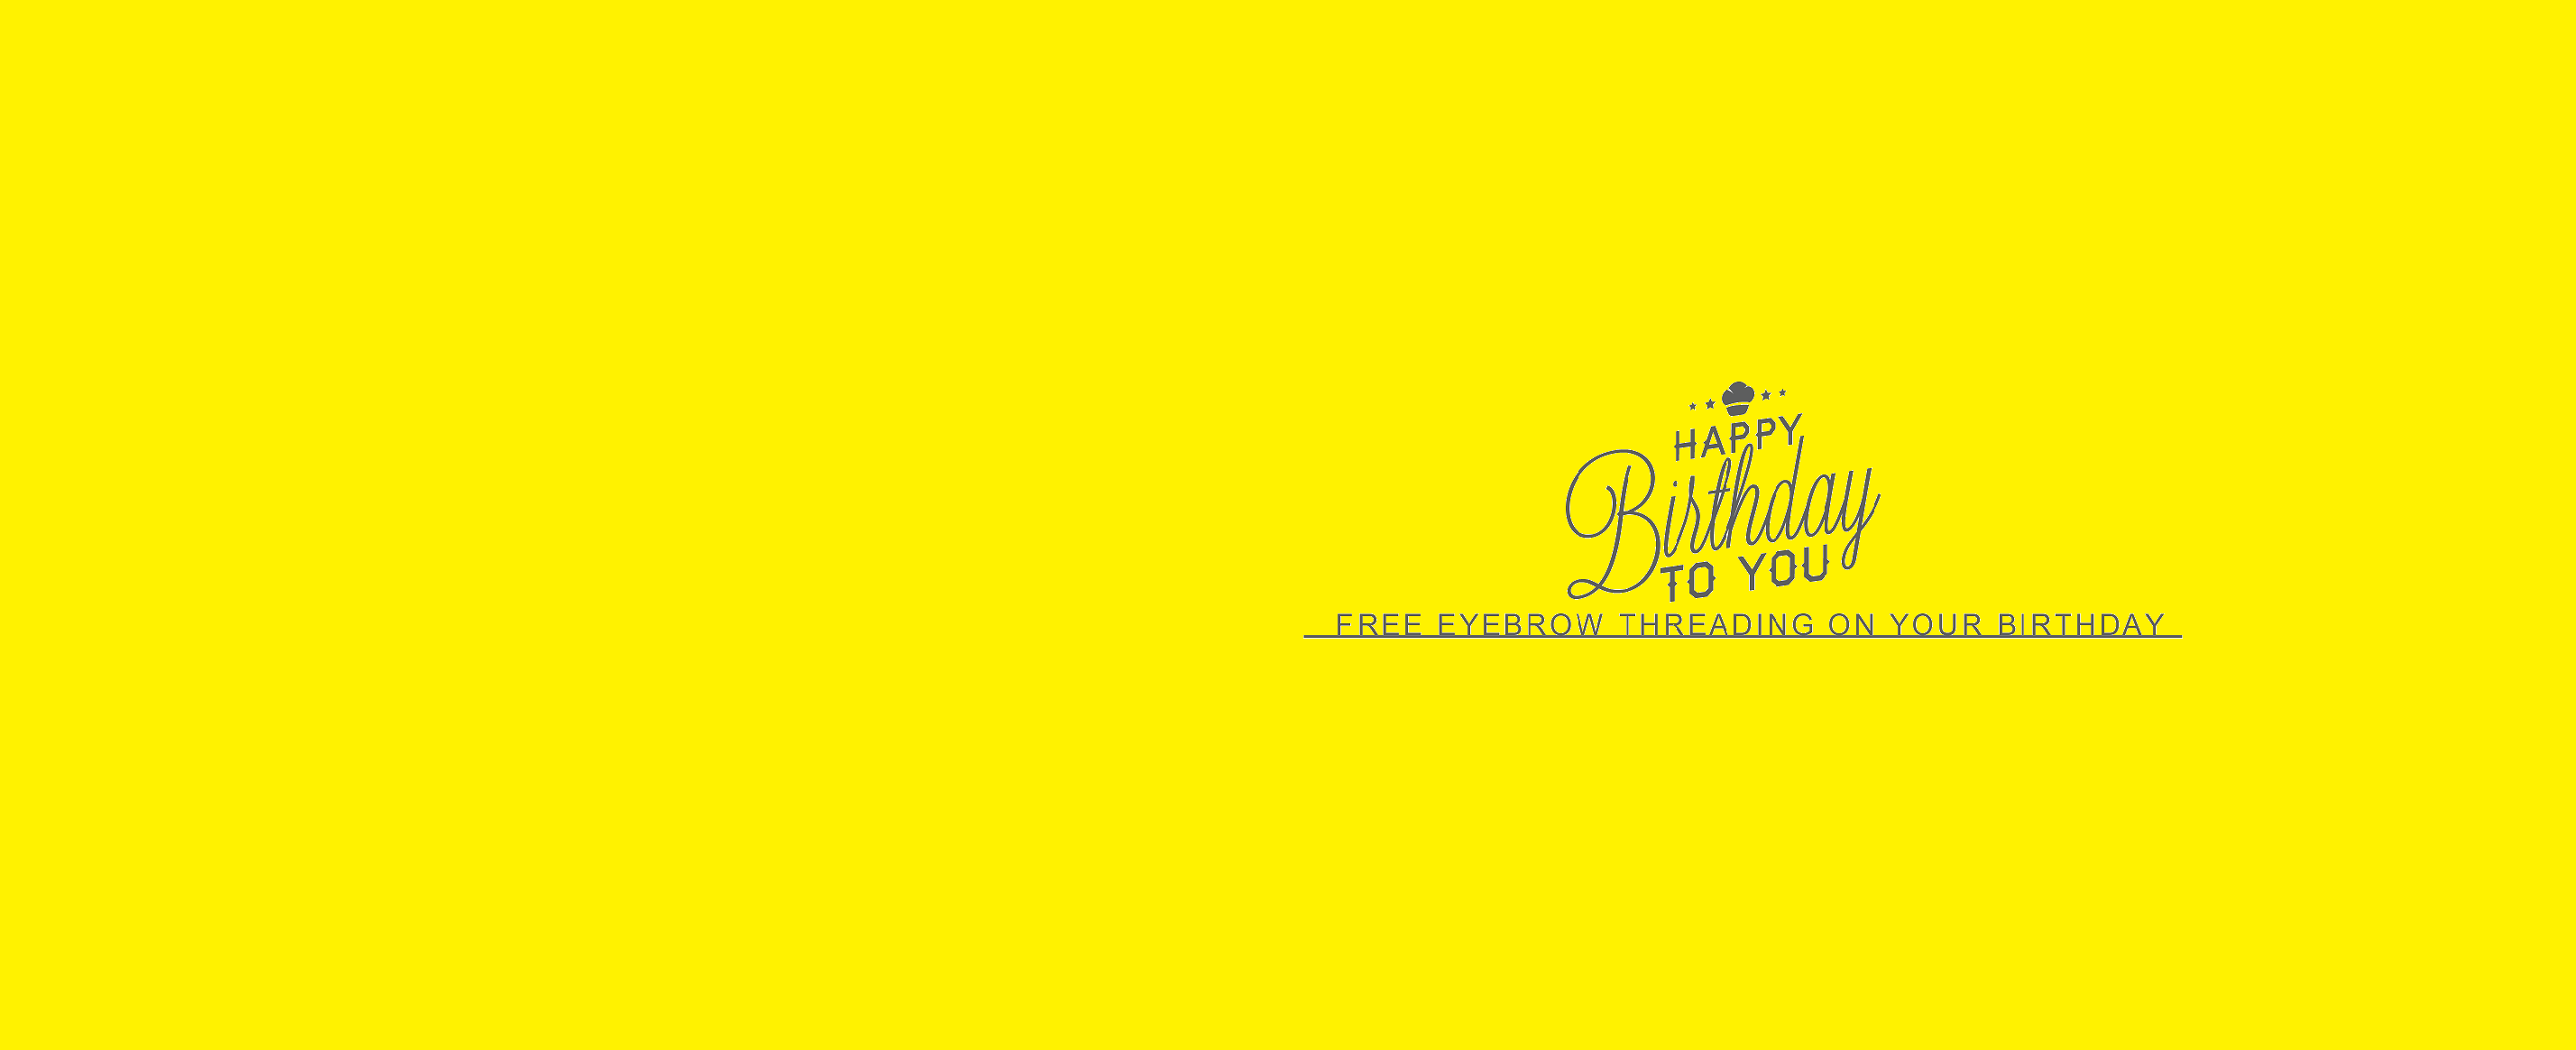 Free Eyebrow Threading On Your Birthday Offers Pinterest Eyebrow